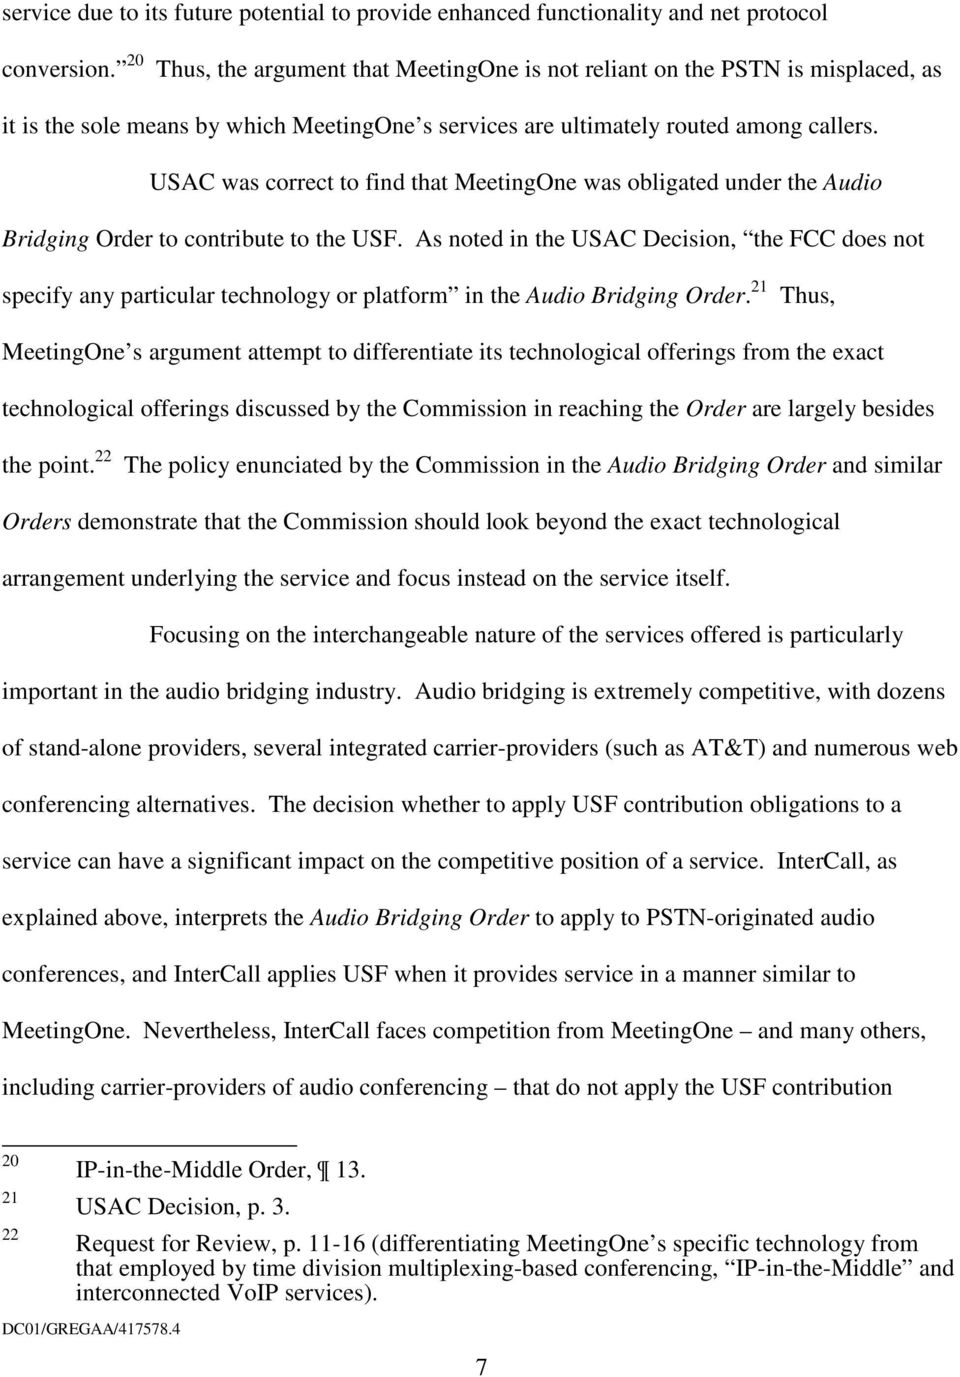 USAC was correct to find that MeetingOne was obligated under the Audio Bridging Order to contribute to the USF.